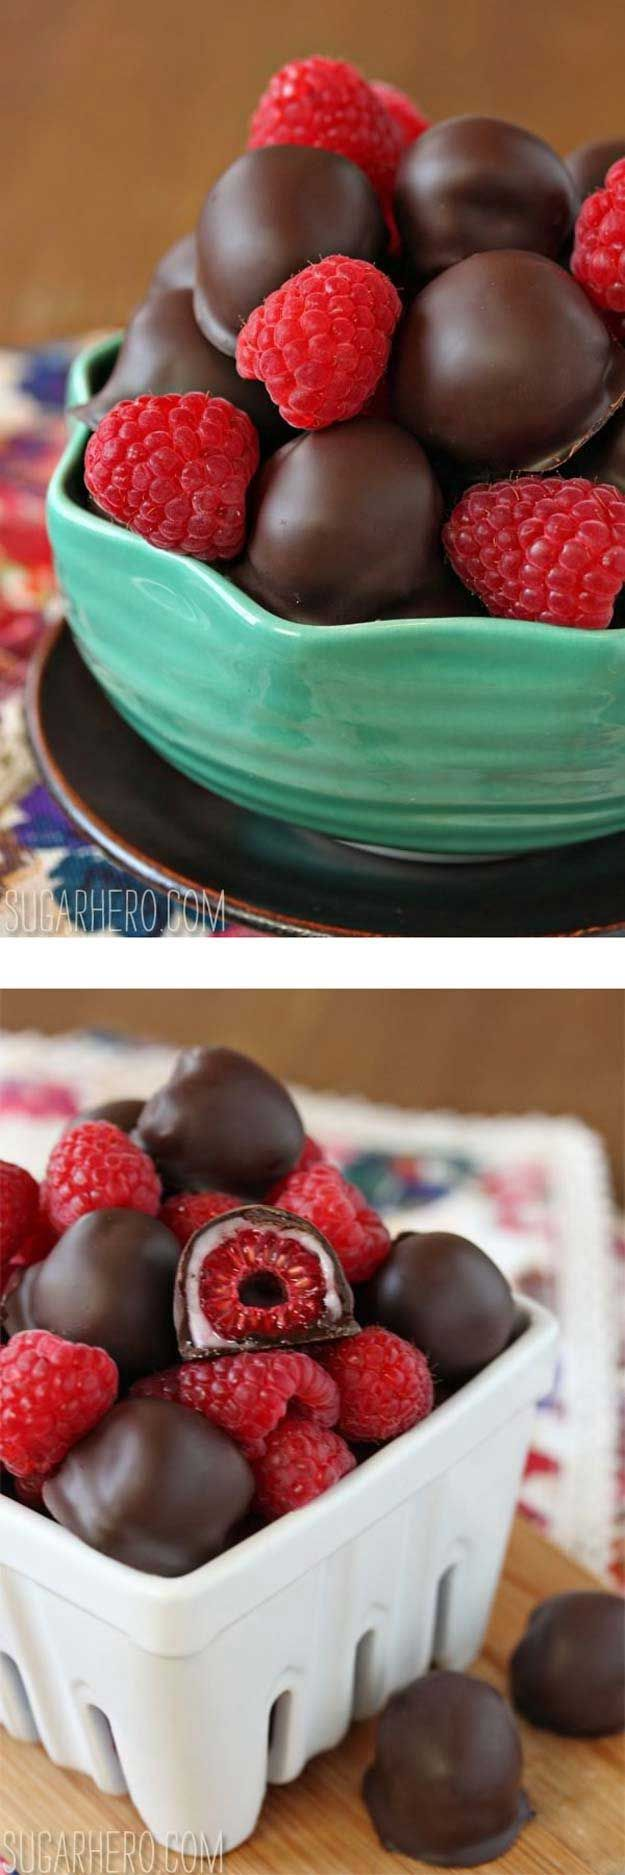 Healthy Desserts To Try Tonight - Chocolate-Covered Raspberry - Easy And Yummy DIY Health Desserts Under 100 Calories To Try Tonight. No Bake Desserts From Scratch You Can Make In A Mug With No Sugar And Easy To Eat Clean. Recipes For Chocolate Desserts For One And Weight Watchers Ideas For Summer, For Fall, And For Winter. Quick Paleo And Low Carb Cookies And Desserts With Fruit You Can Make At Home By Yourself That Are No Guilt, Guilt Free, And Healthy. Loose Weight And Get A Flat Belly…